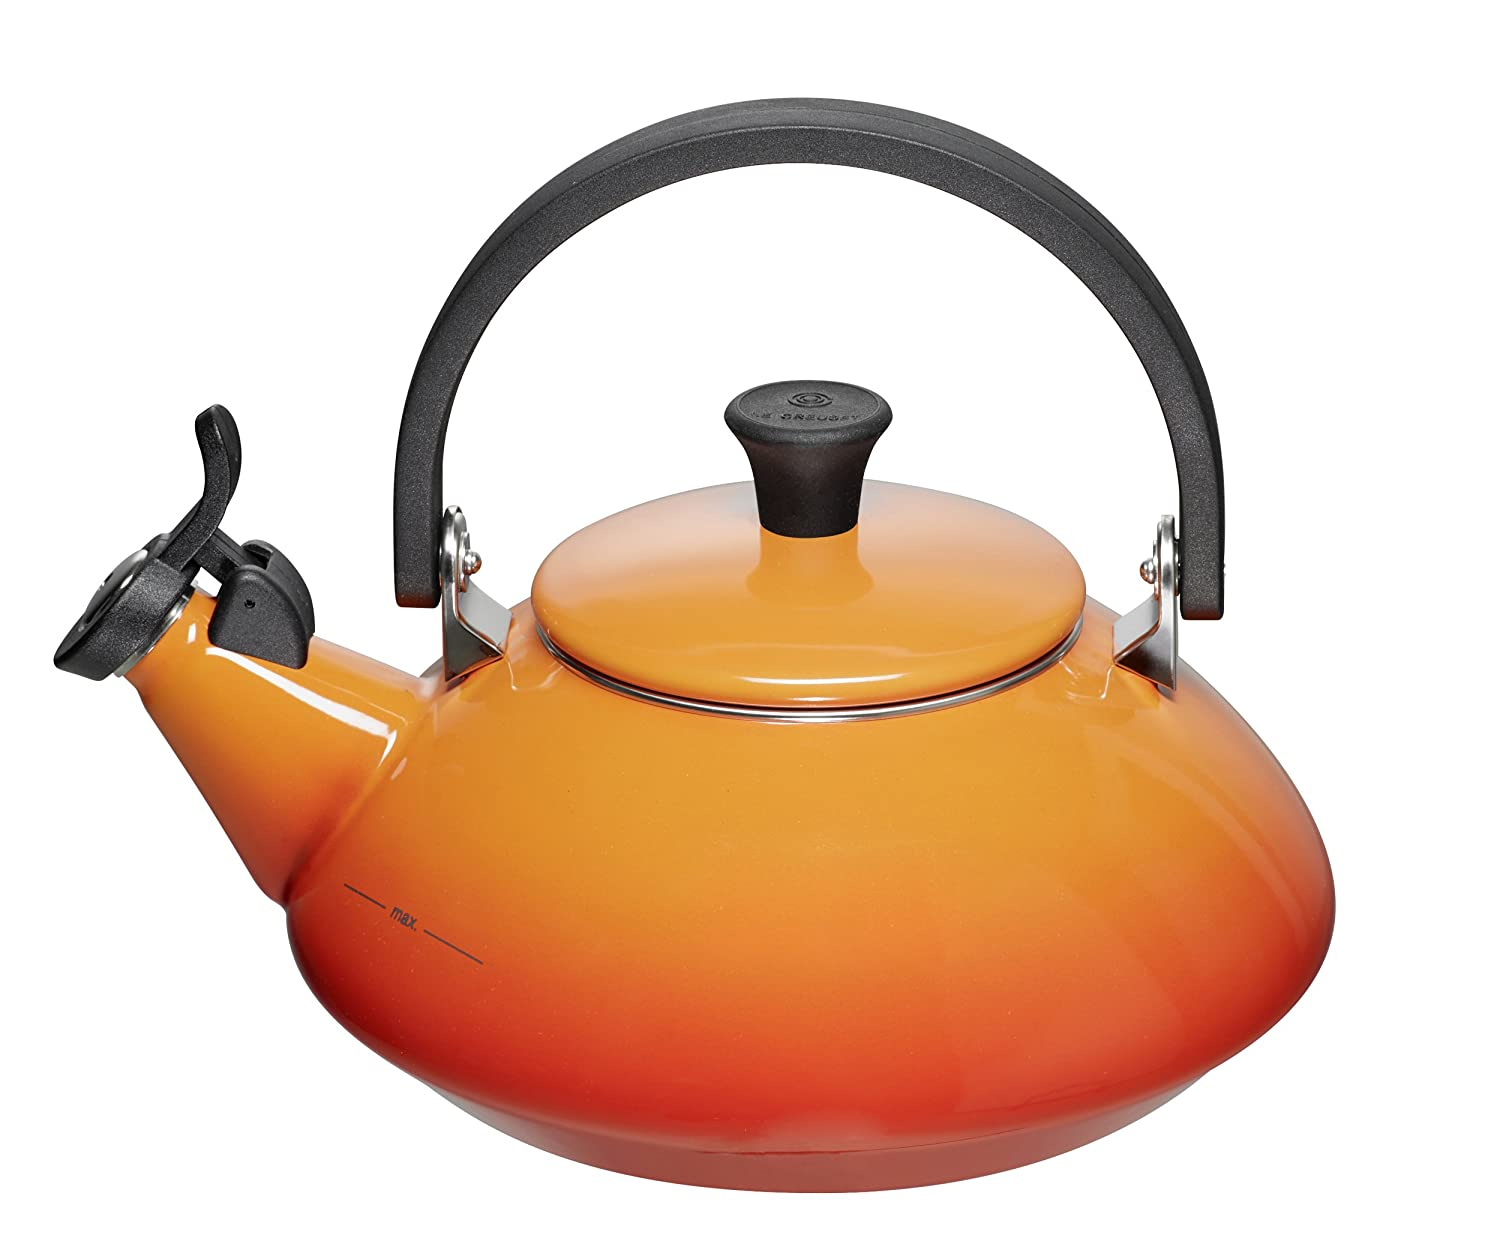 amazoncom enamel on steel  qt zen tea kettle color flame  - amazoncom enamel on steel  qt zen tea kettle color flame kitchen dining